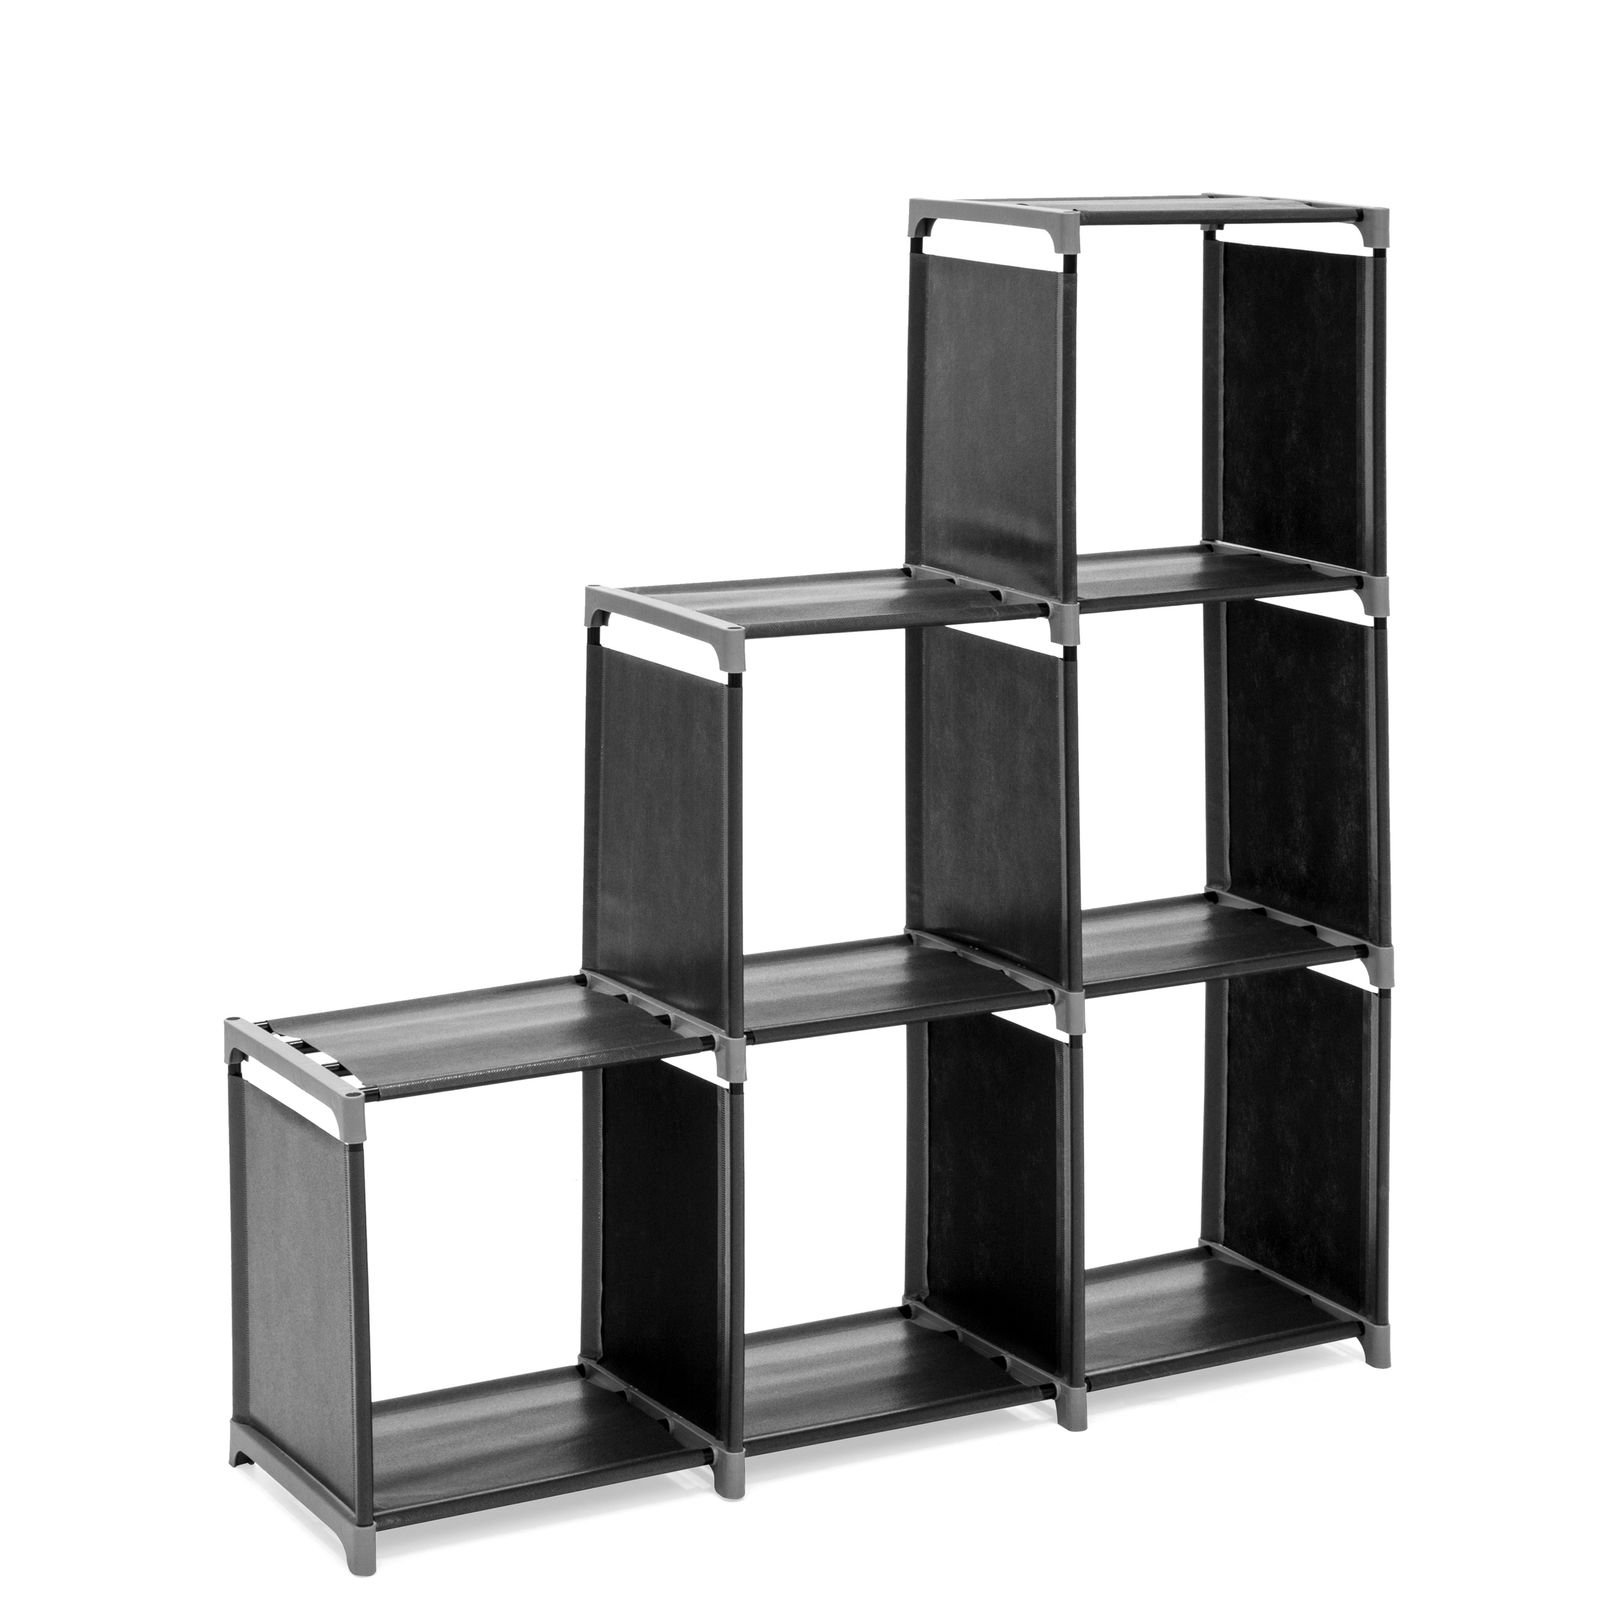 Heaven Tvcz Drawer Shelves Display Drawers Black Shelving Cubby Storage Organizer Wood Tier Rack 6-Drawer Multi-Purpose Cabinet Vintage Rustic Corner for kids' rooms, living rooms, closets, and storag